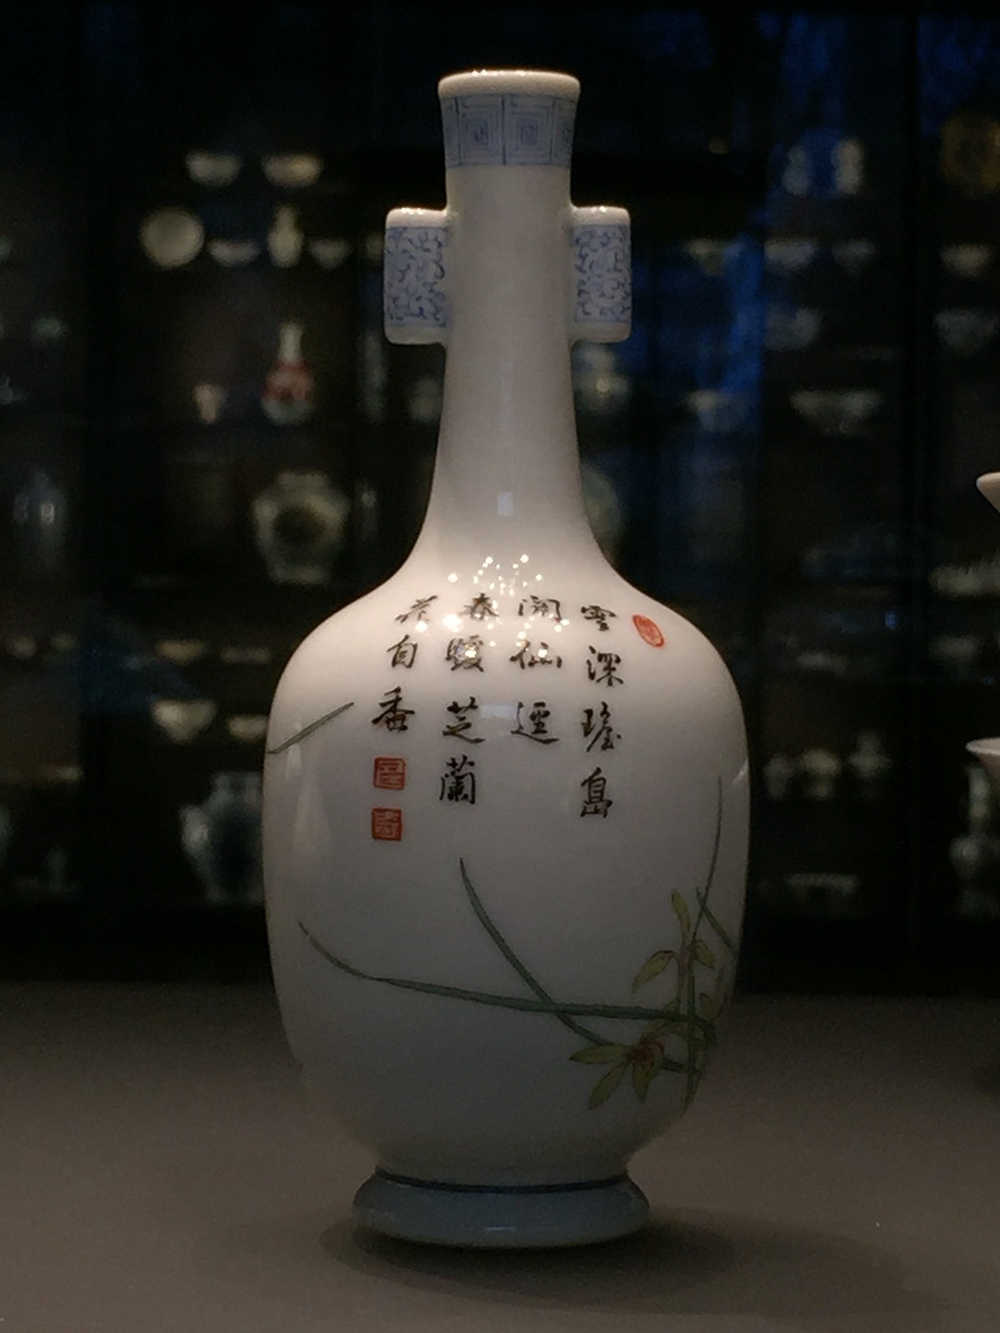 Chinese-Porcelain-British-Museum-Percival-David-jessewaugh.com-103.jpg